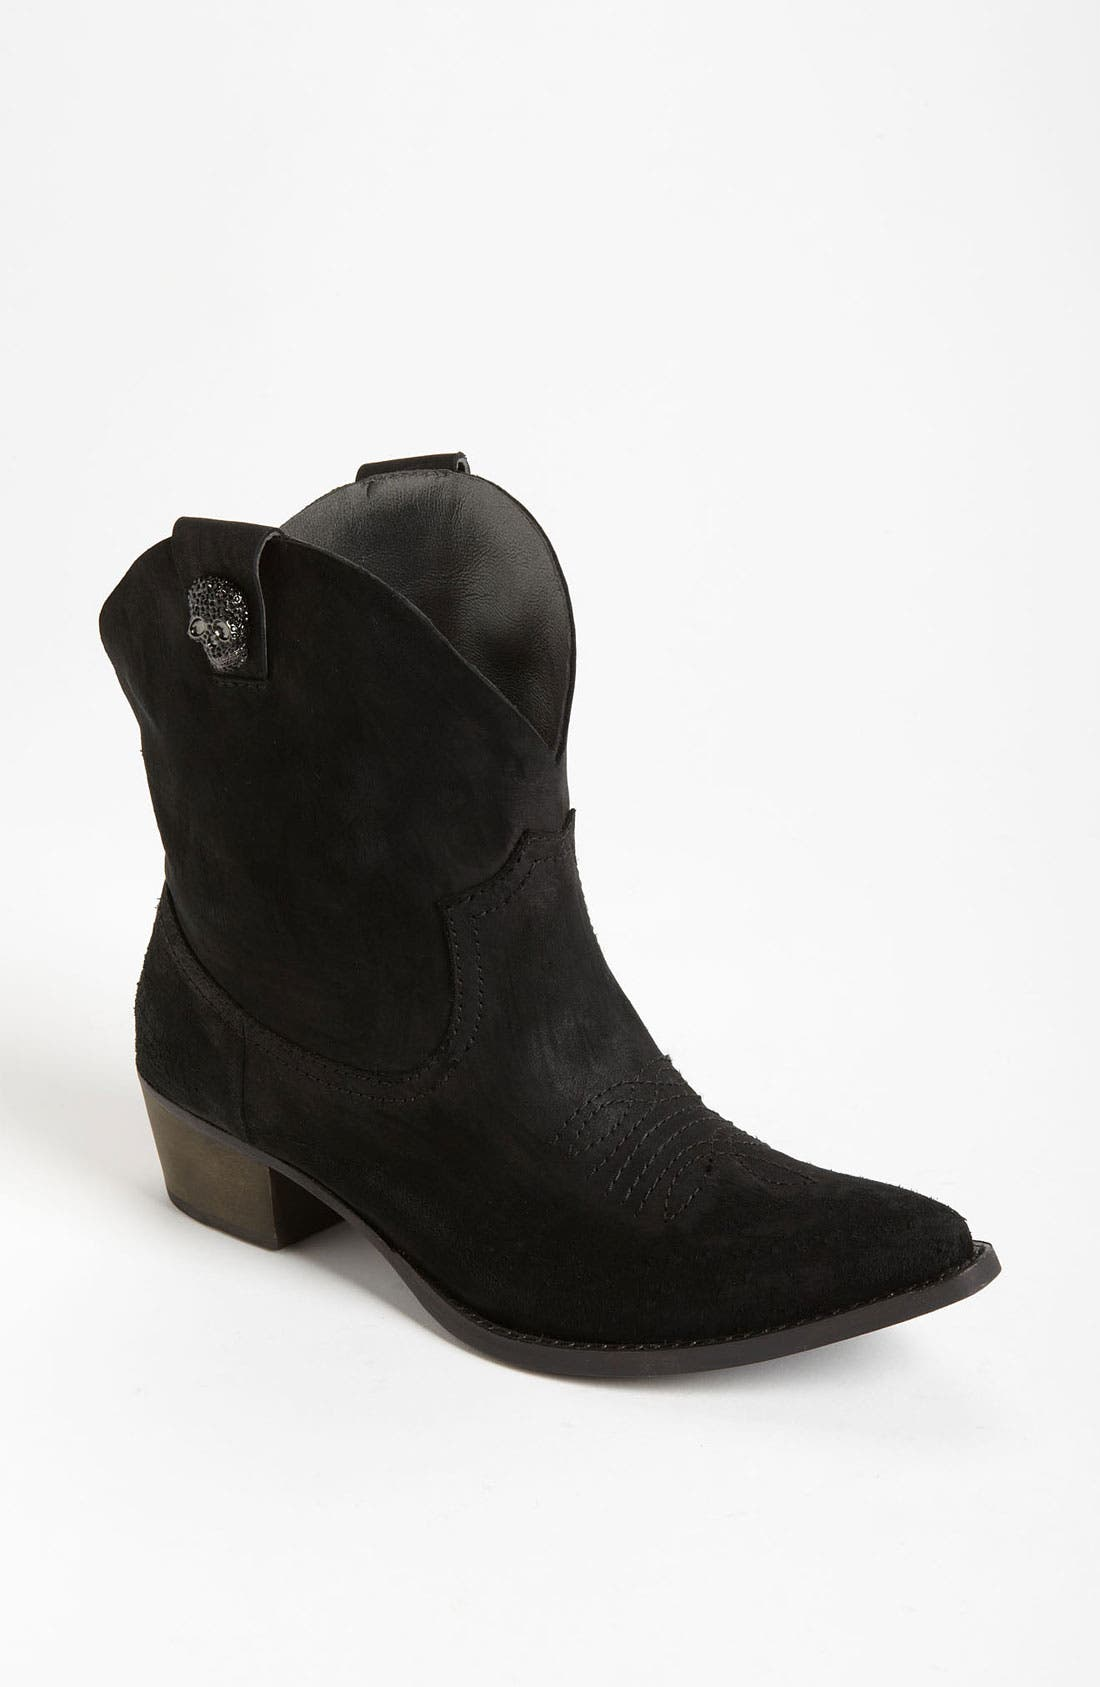 Alternate Image 1 Selected - Zadig & Voltaire 'Payne' Short Boot